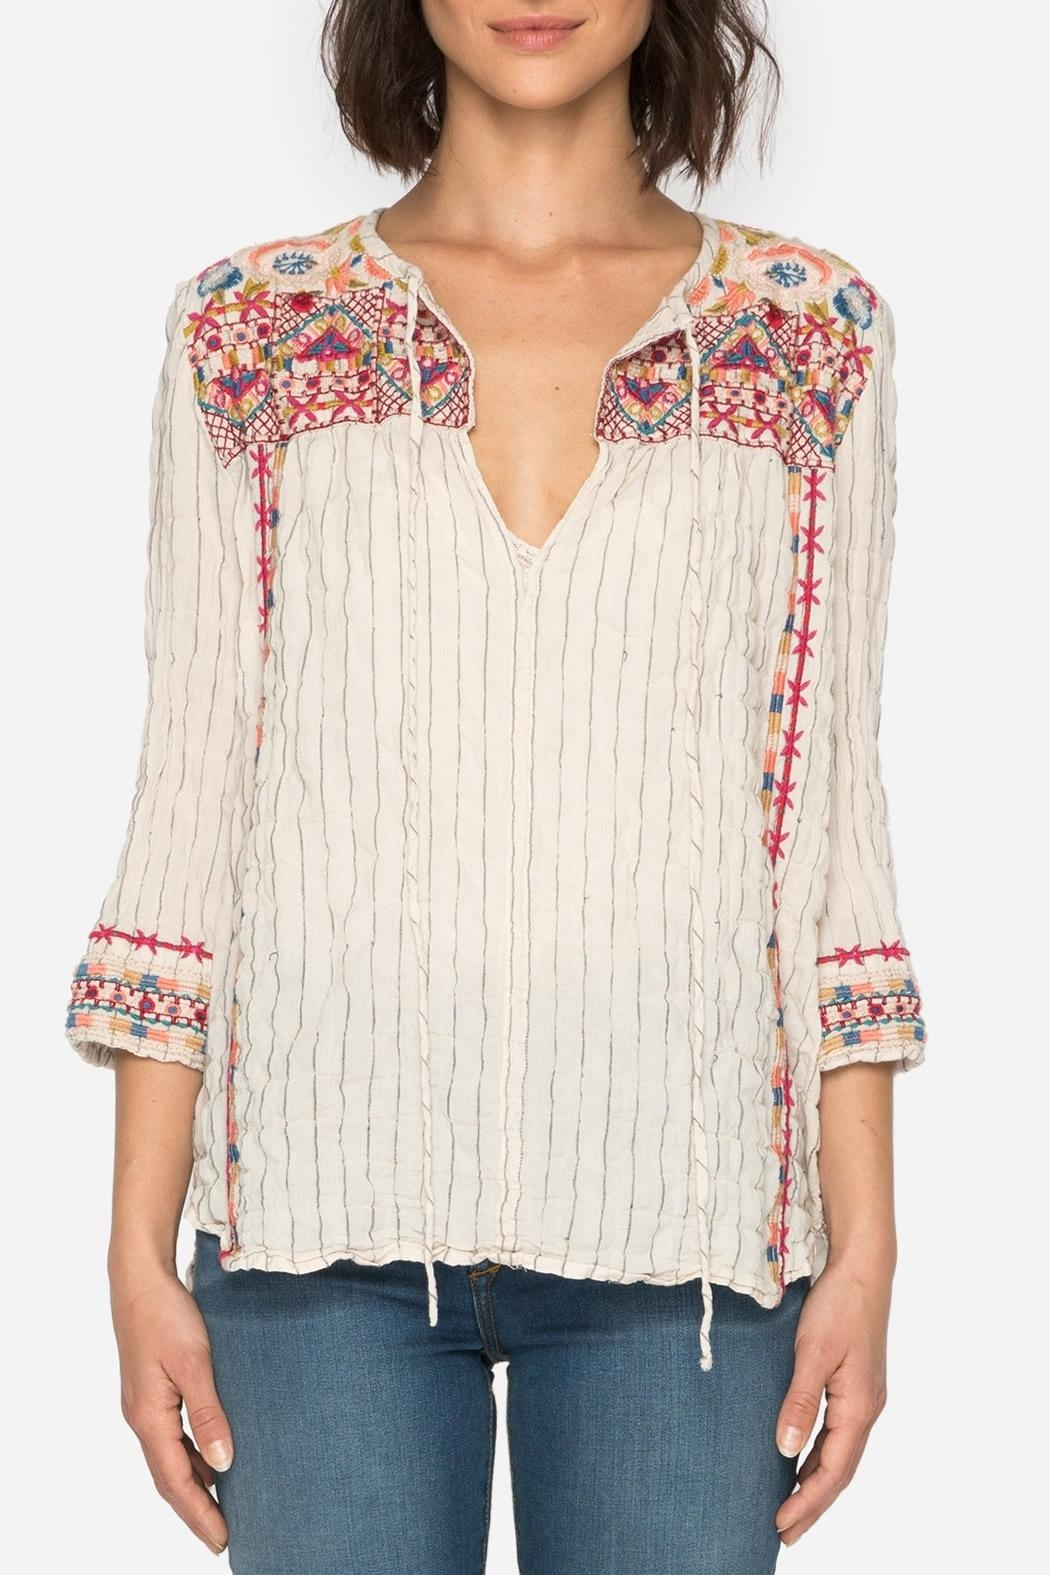 Johnny Was Kealan Boho Shirt - Main Image